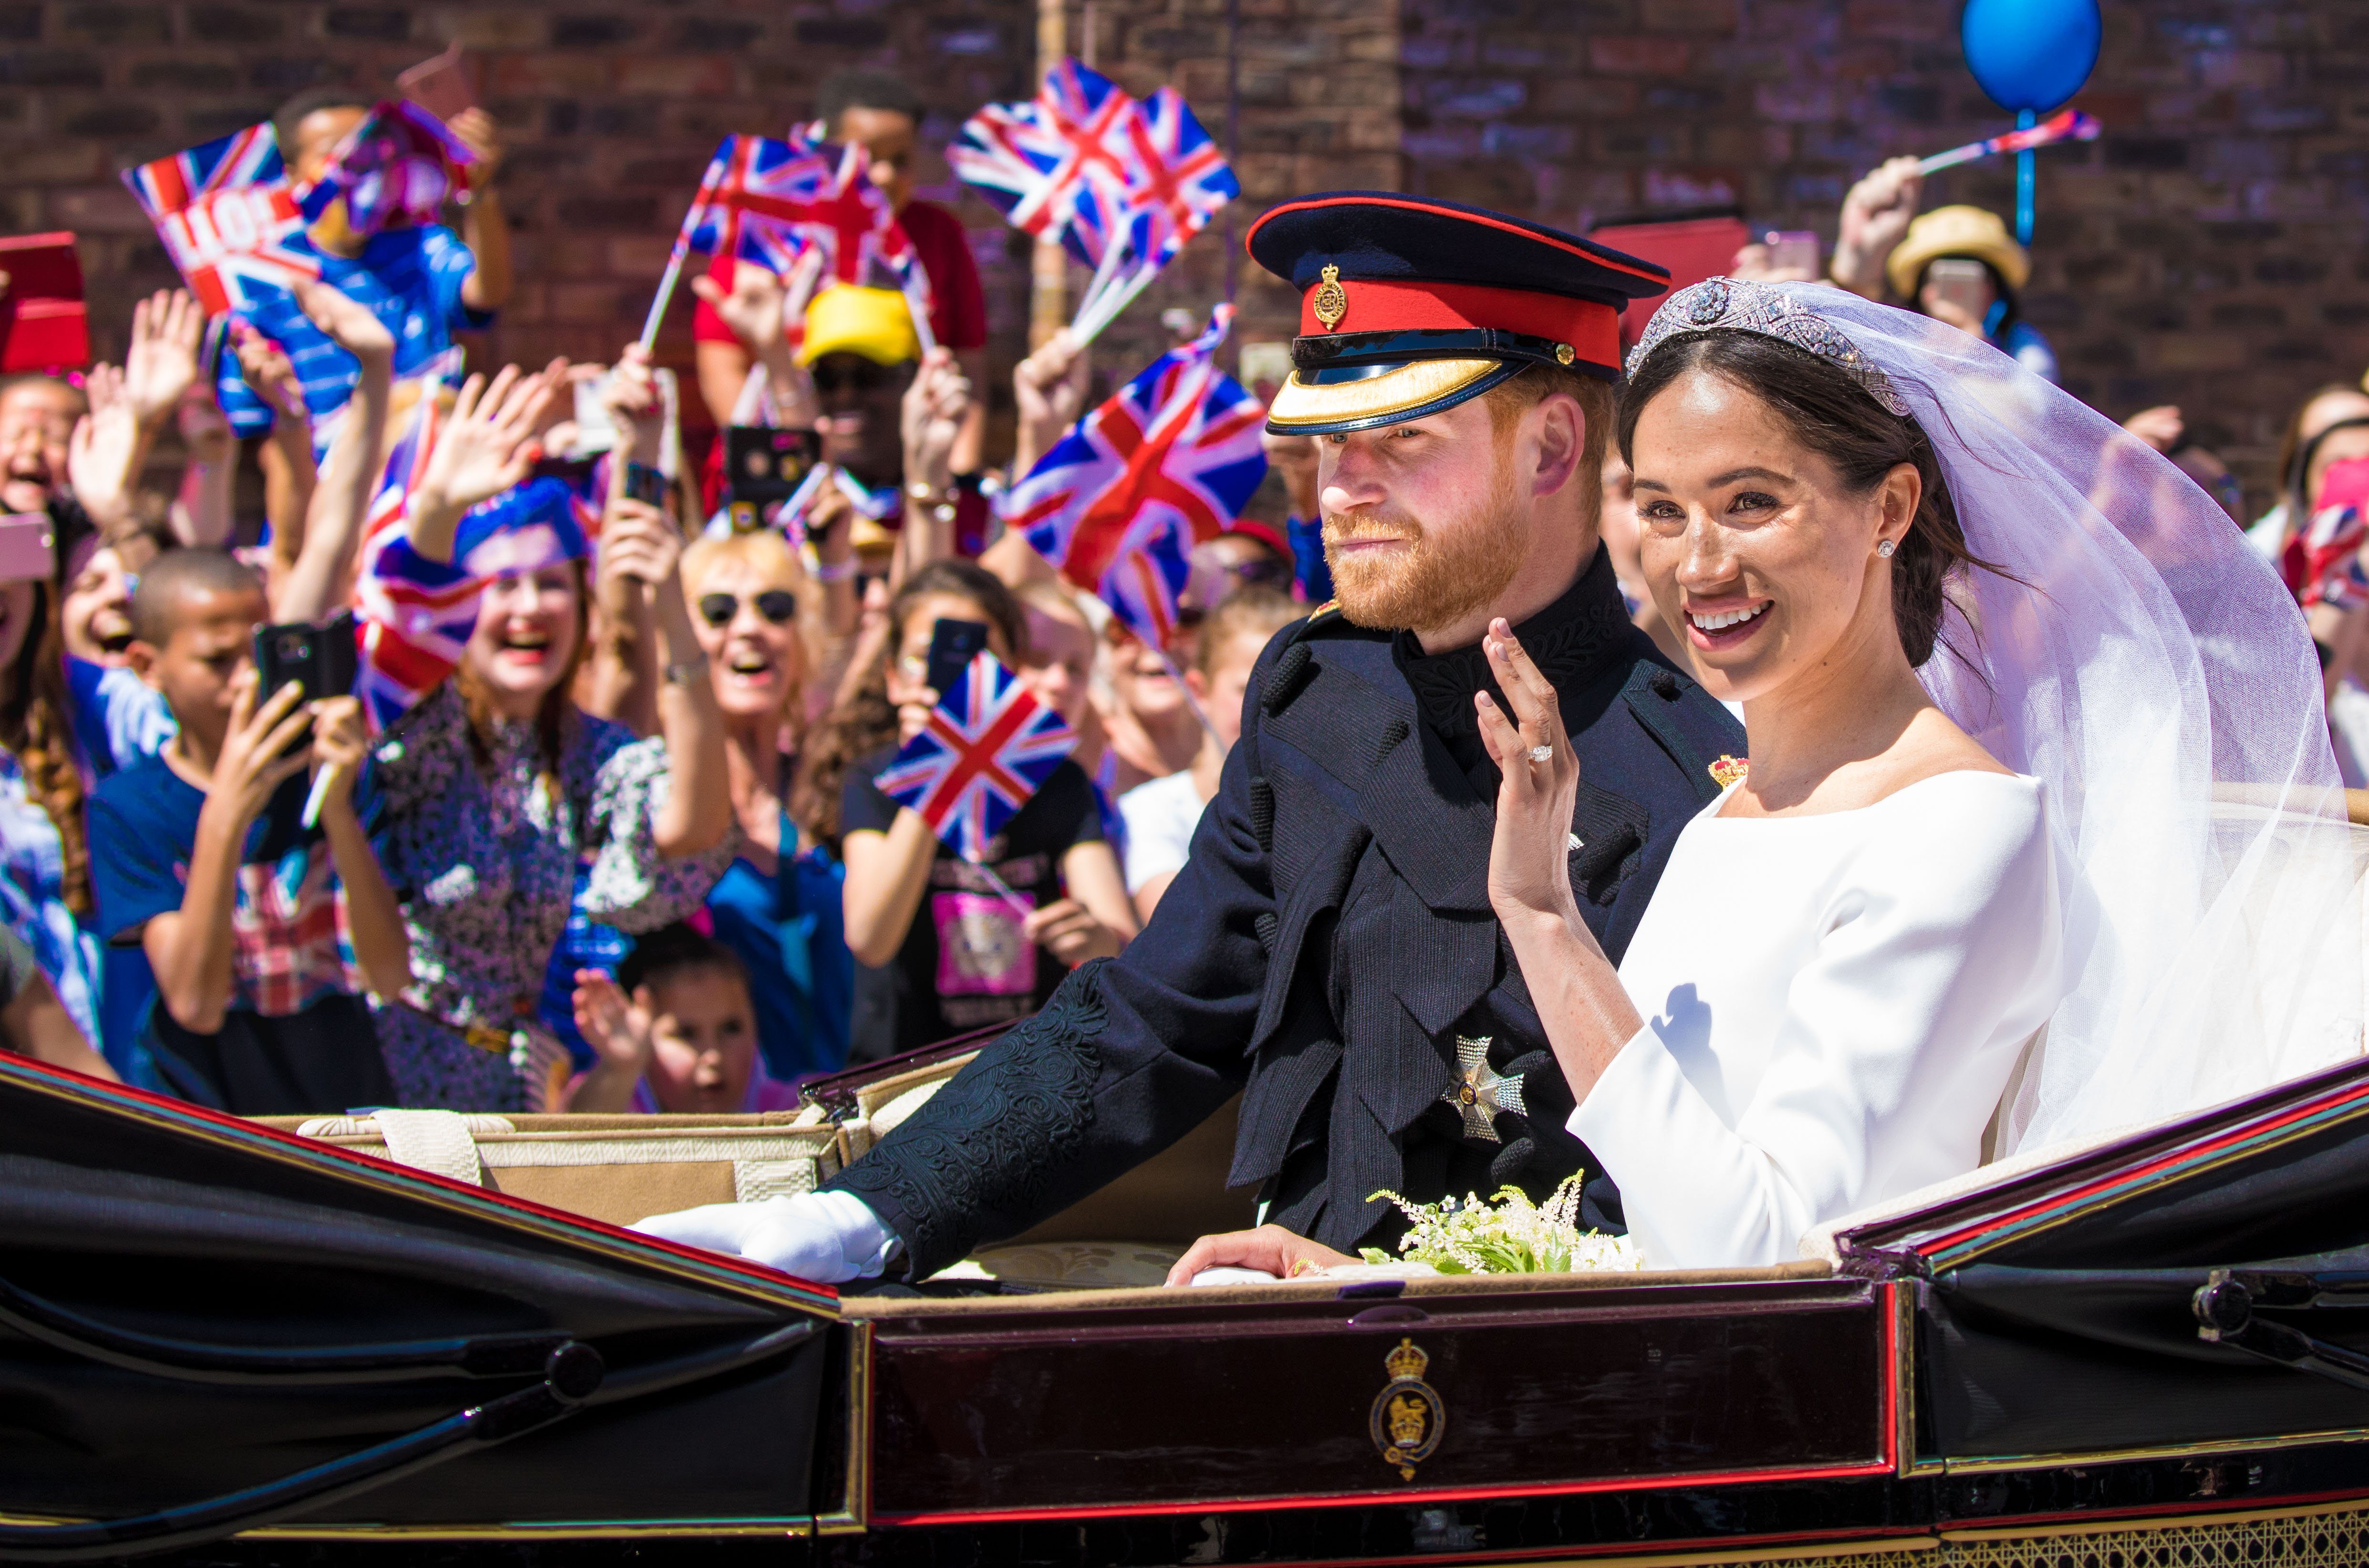 Mandatory Credit: Photo by Shutterstock (9686355b) Prince Harry and Meghan Markle during the Carriage Procession of their wedding in Windsor, Berkshire, UK. The wedding of Prince Harry and Meghan Markle, Windsor, UK - 19 May 2018